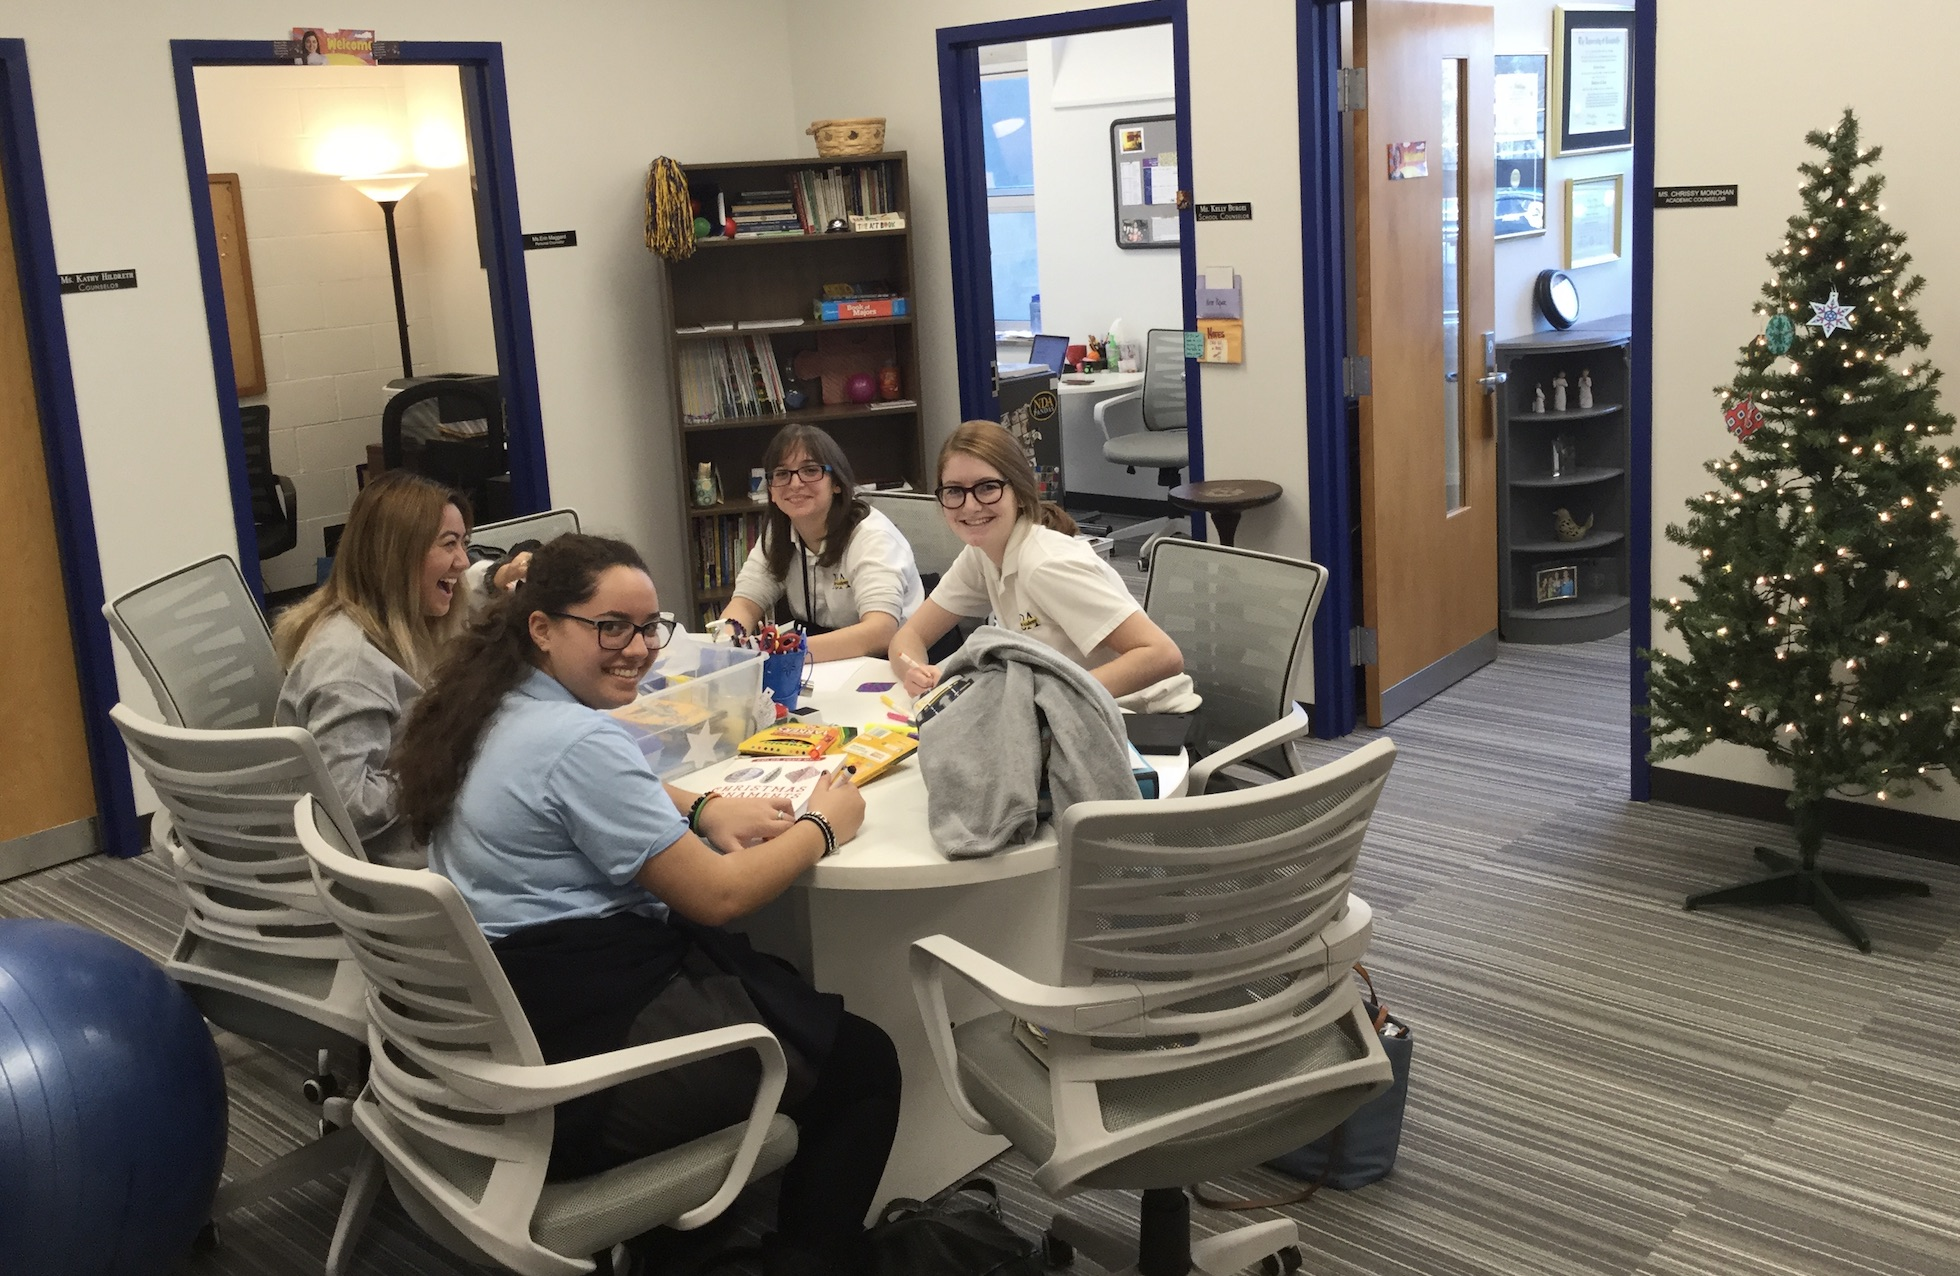 Students sitting at a table working together at Notre Dame Academy catholic all-girls school in Covington, Northern Kentucky.